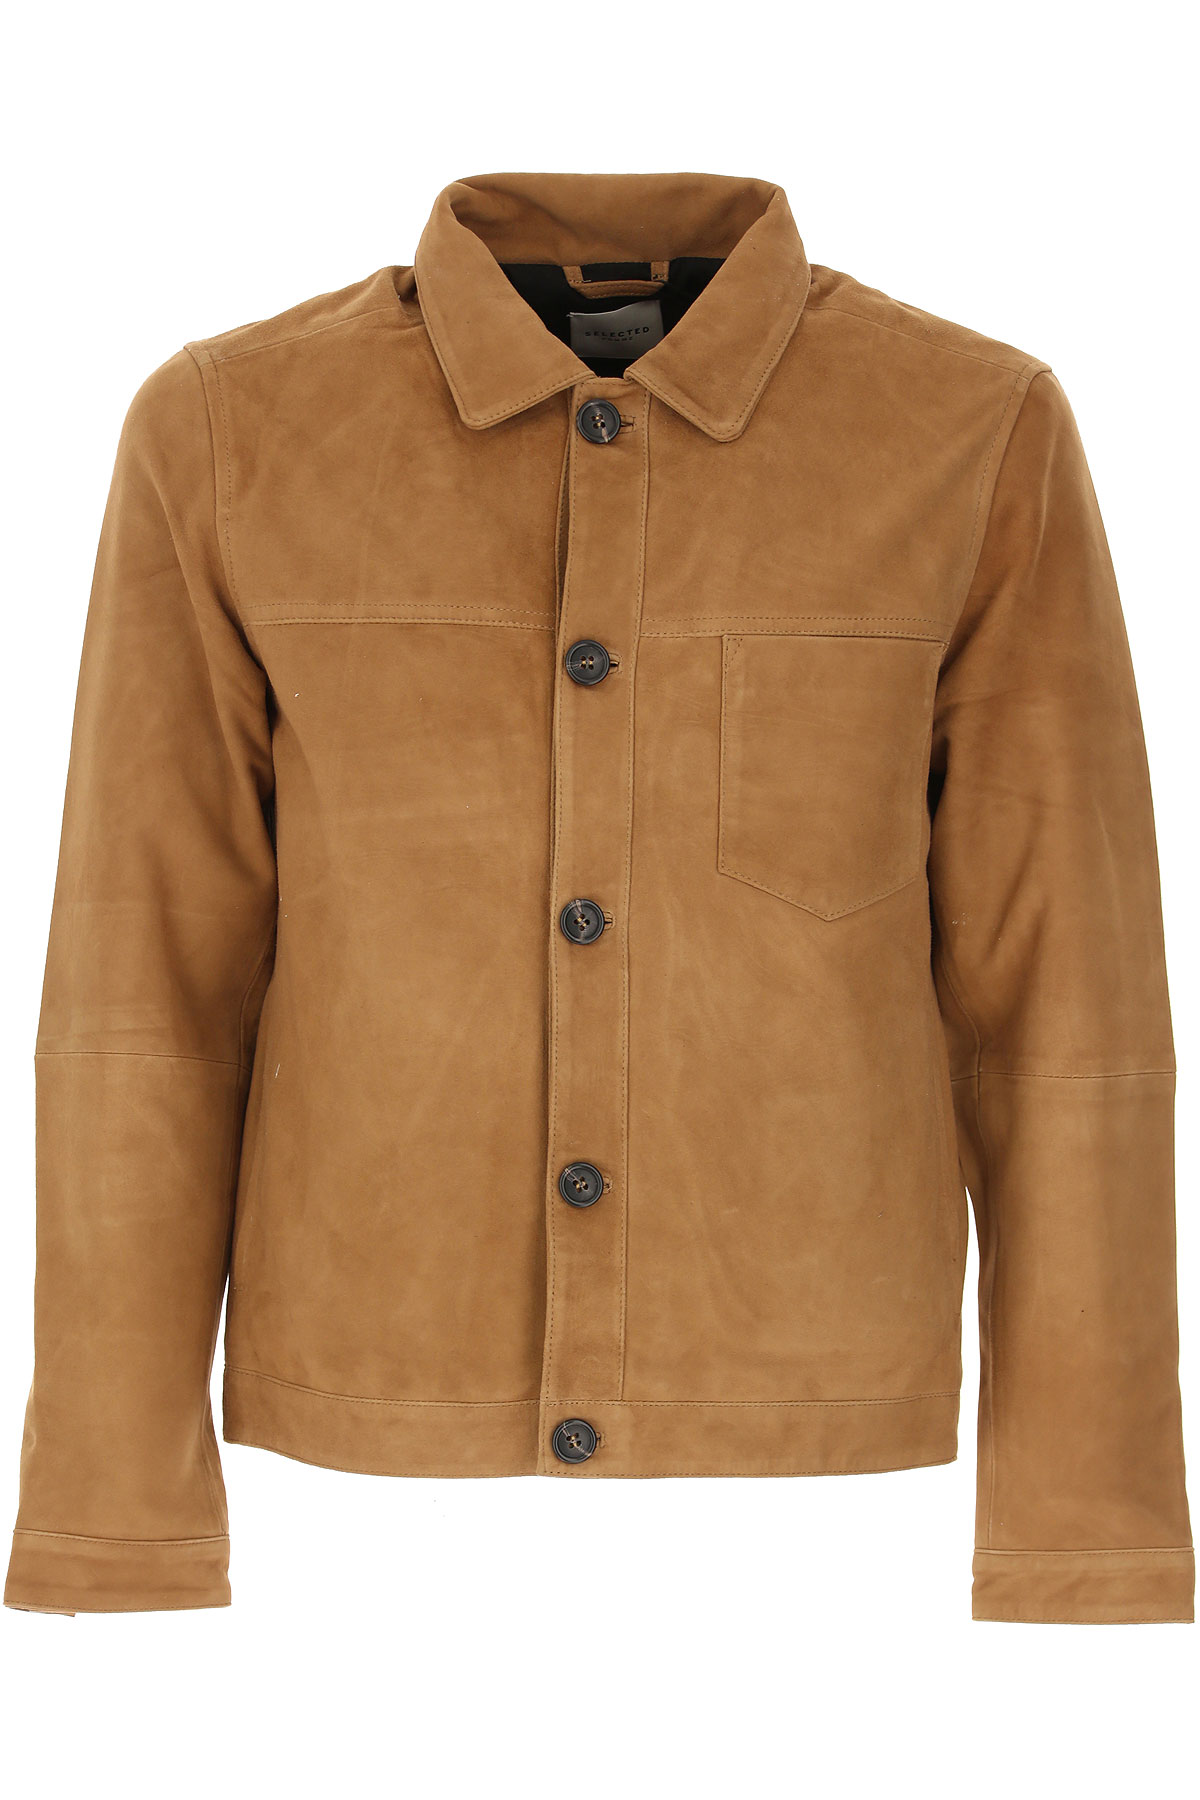 Selected Leather Jacket for Men On Sale, Camel, Leather, 2019, L M S XL